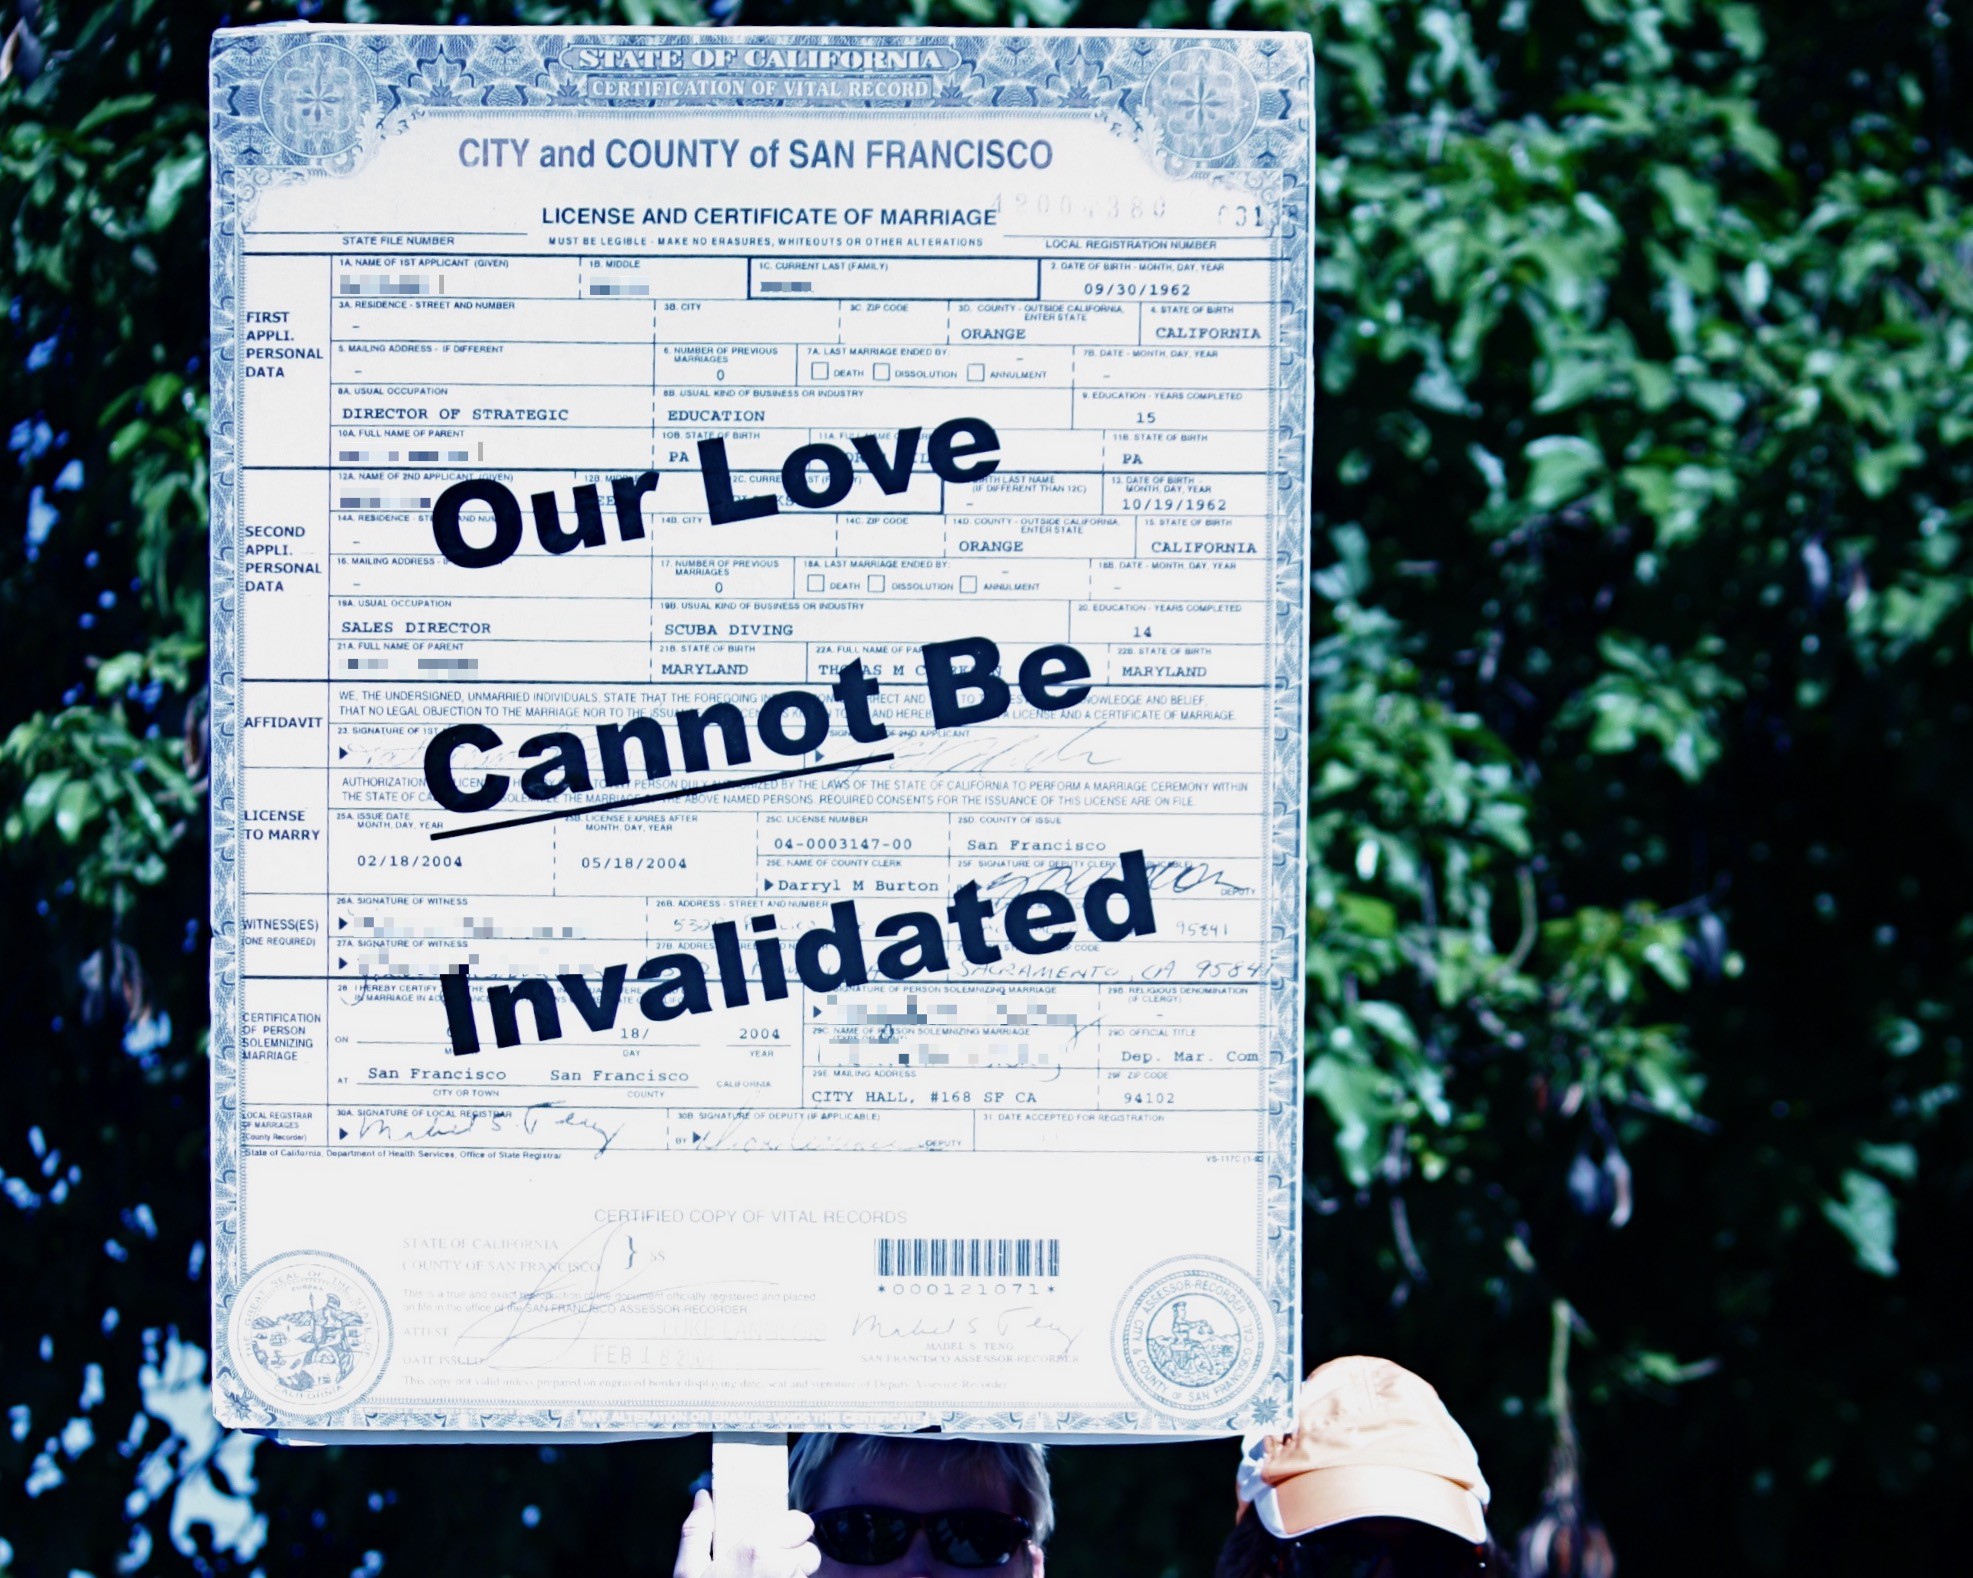 Sign: Our Love Cannot be Invalidated via Flicker